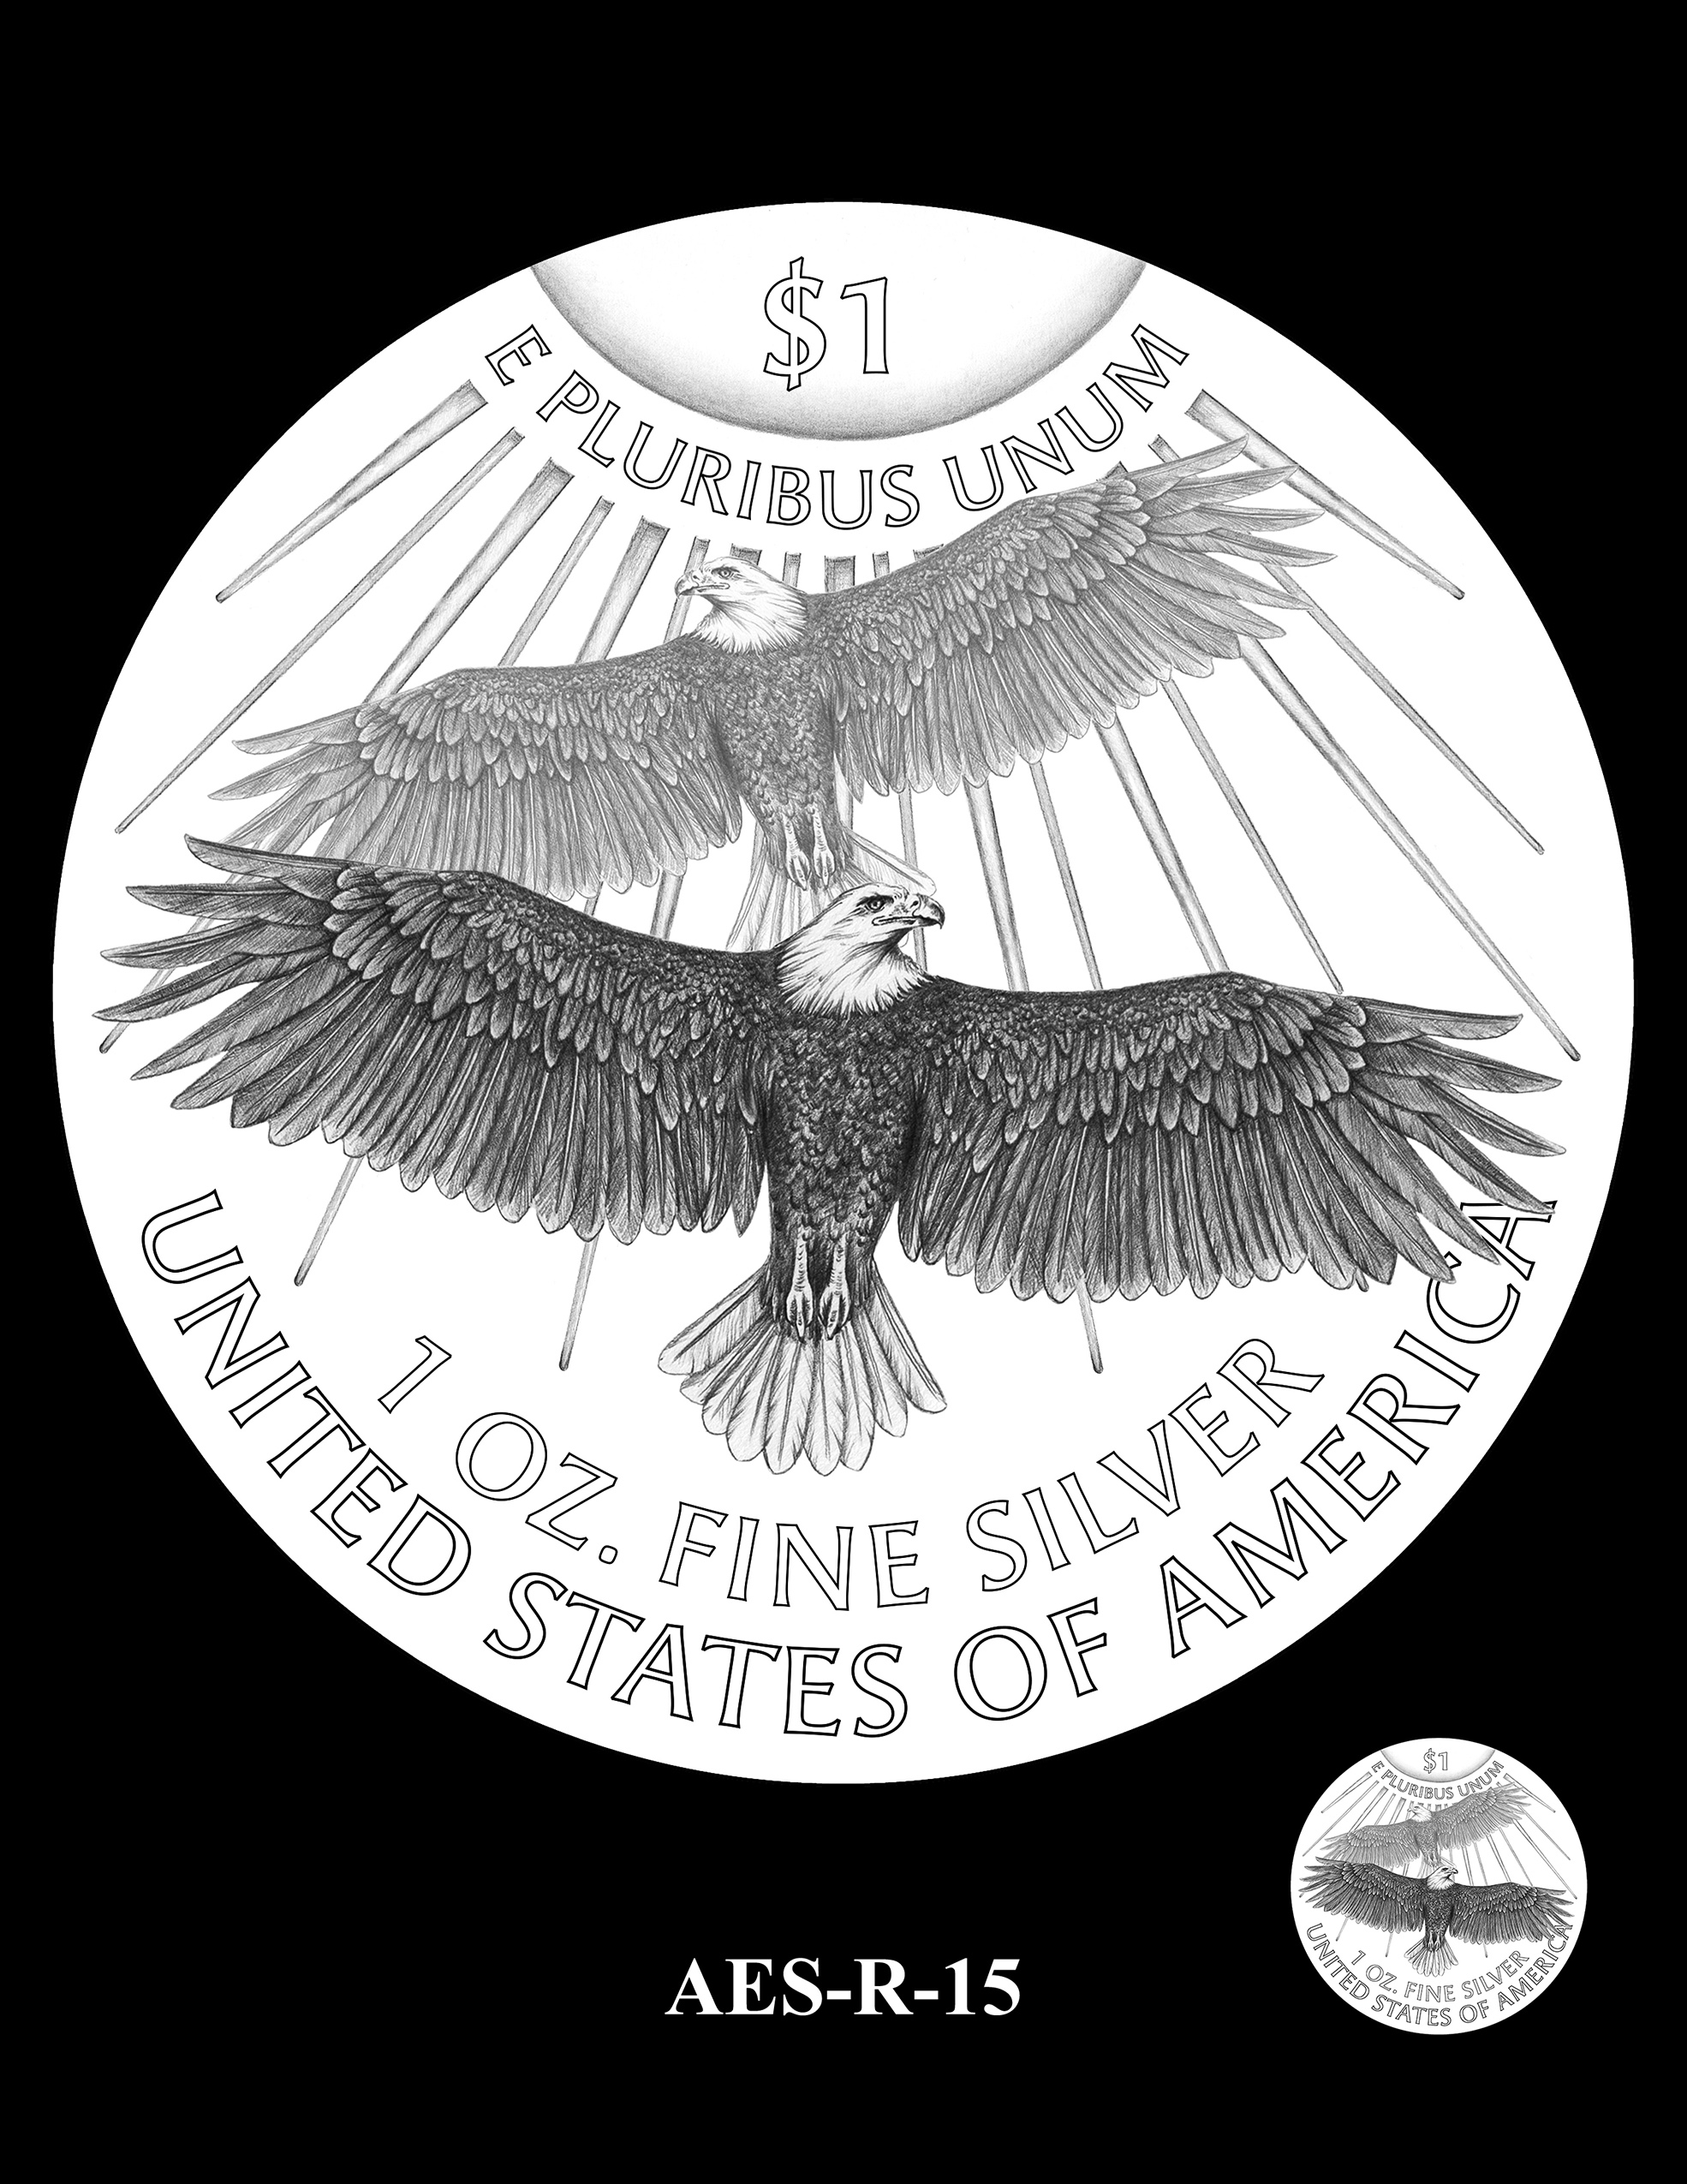 AES-R-15 -- American Eagle Proof and Bullion Silver Coin - Reverse